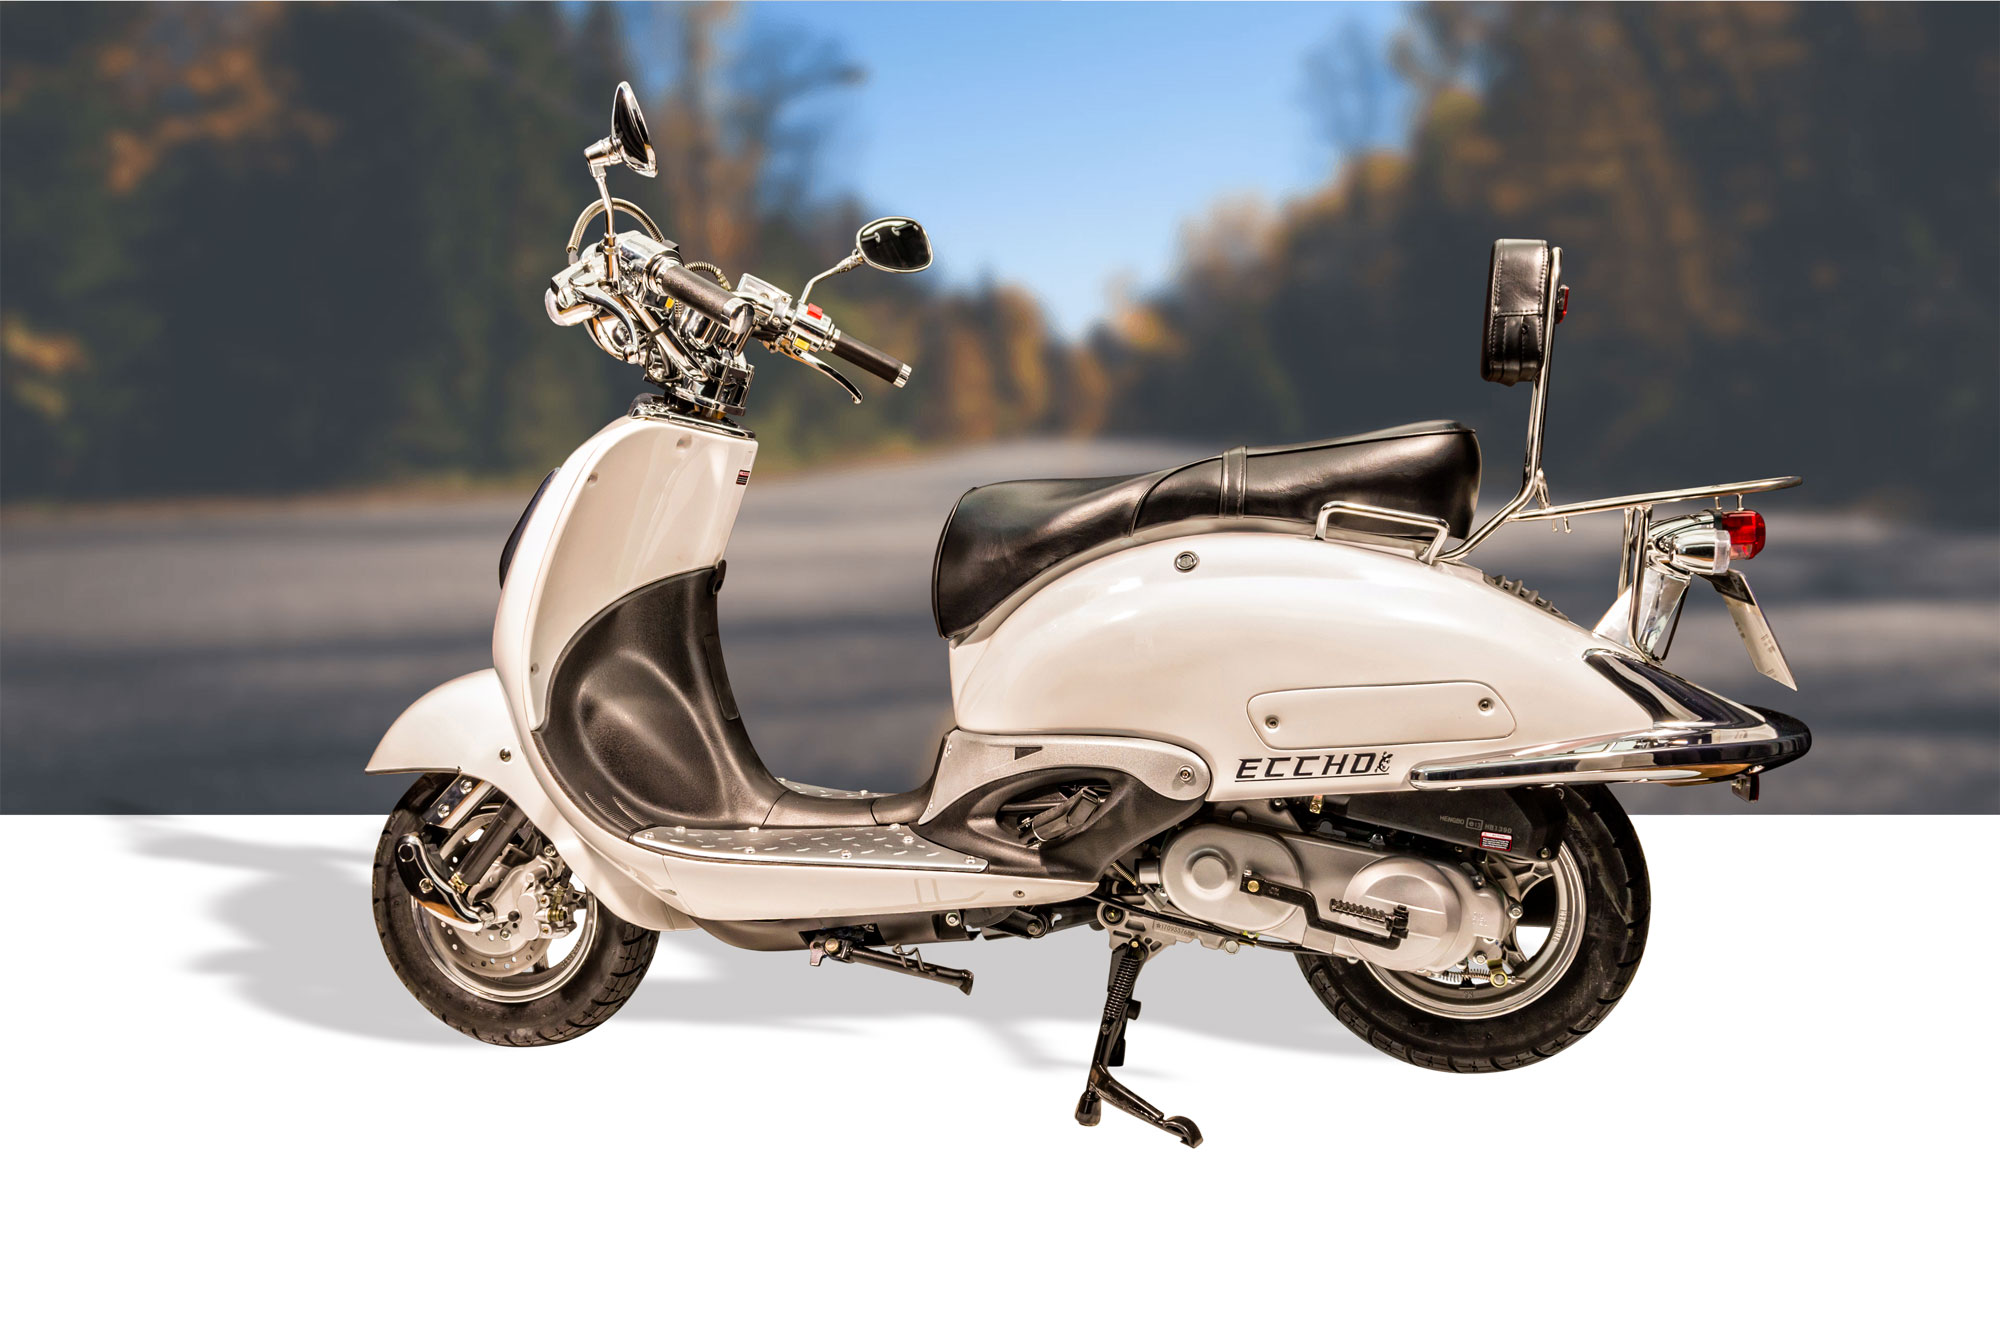 SCOOTER-50-ECCHO-CHOUPETTE-II-WHITE-SERIES-08